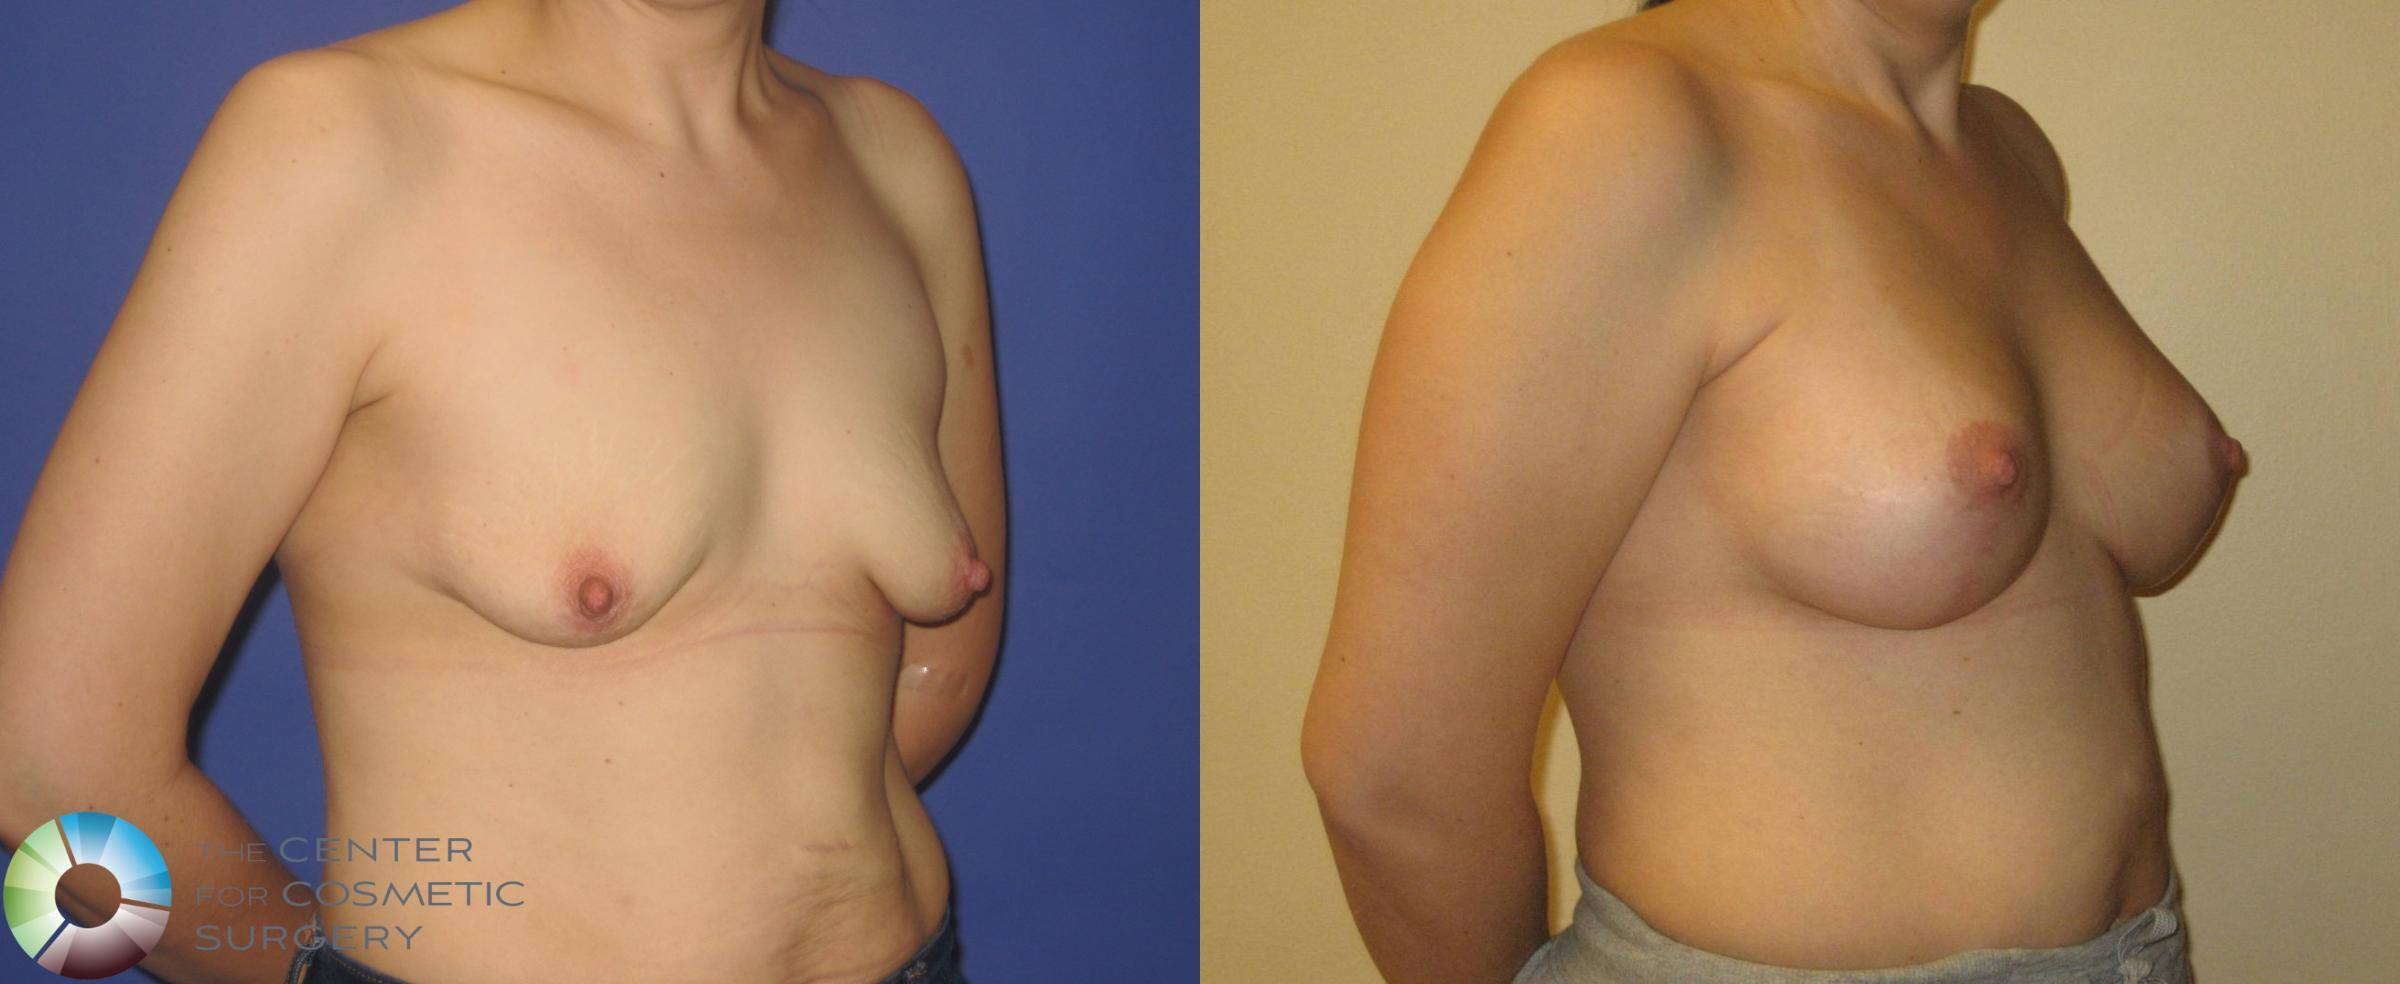 Breast Augmentation Case 355 Before & After View #2 | Golden, CO | The Center for Cosmetic Surgery